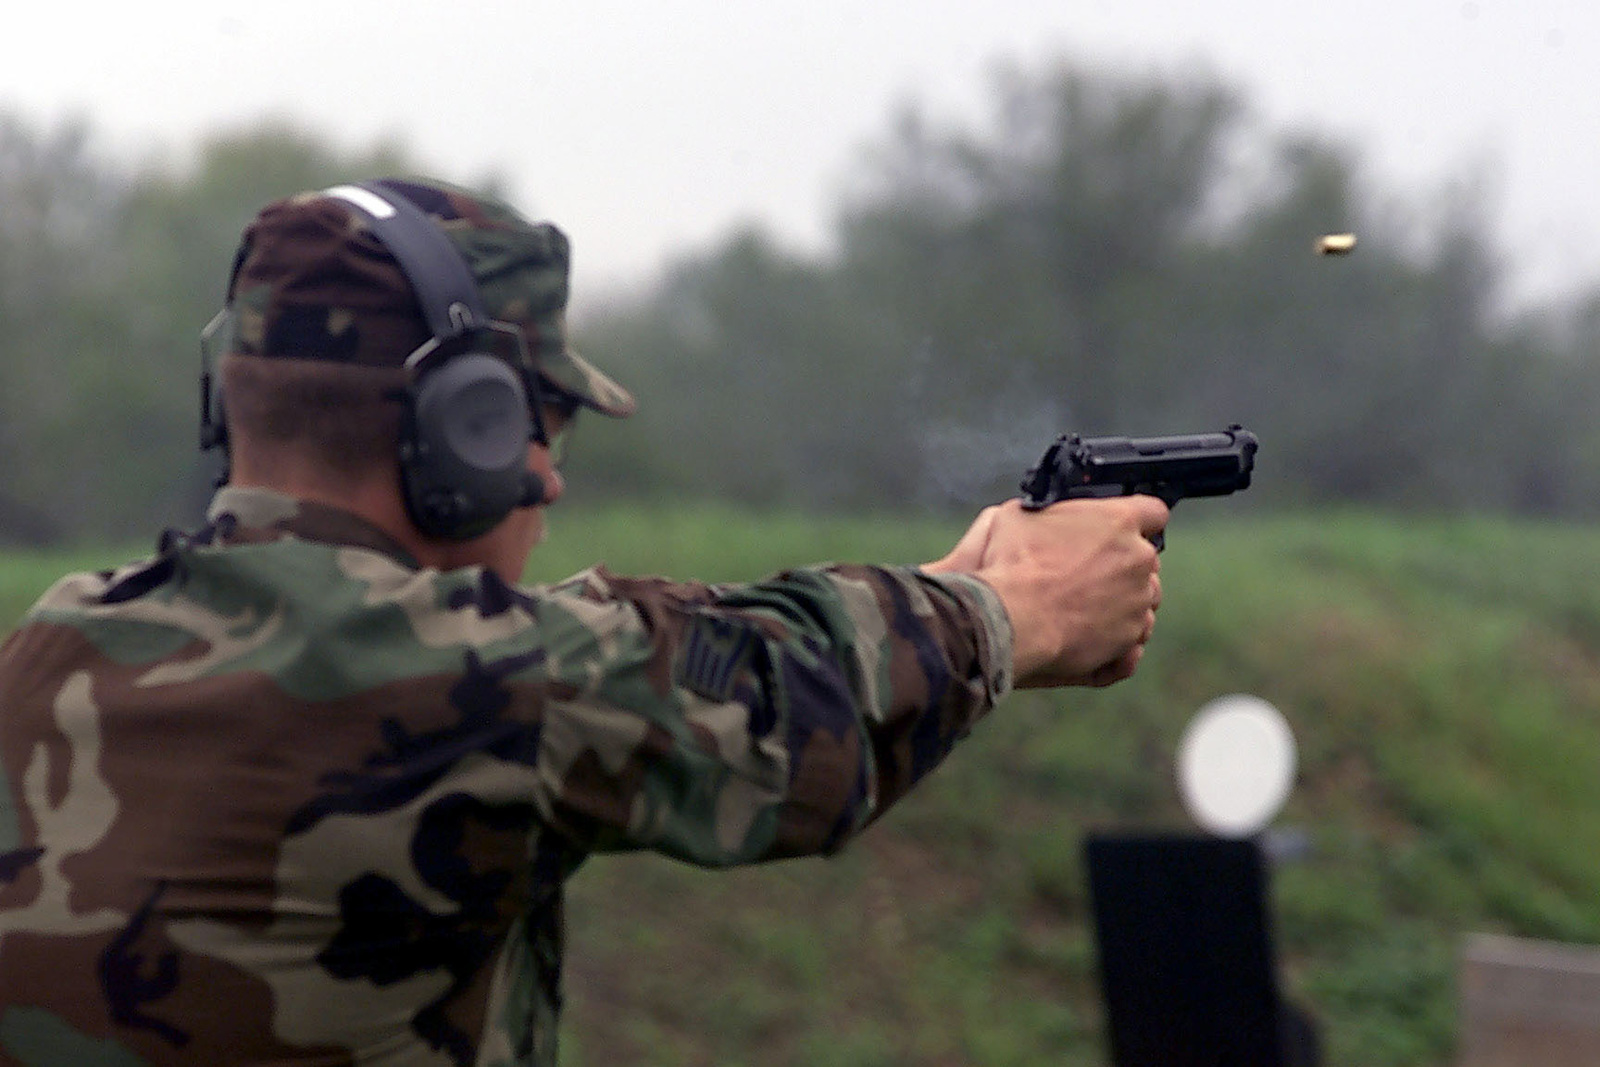 US Air Force STAFF Sergeant Timothy Arnold, a member of the Air Mobility Command team, fires a M9 9mm pistol during the Pistol competition portion of Exercise DEFENDER CHALLENGE 2000 at Lackland Air Force Base, Texas. The Exercise is as annual Air Force wide competition, sponsored by Air Force Security Forces, which showcases the talents and capabilities of 13 international Security Forces teams in 7 physical fitness events, base defense, and policing skills over a period of 6 days